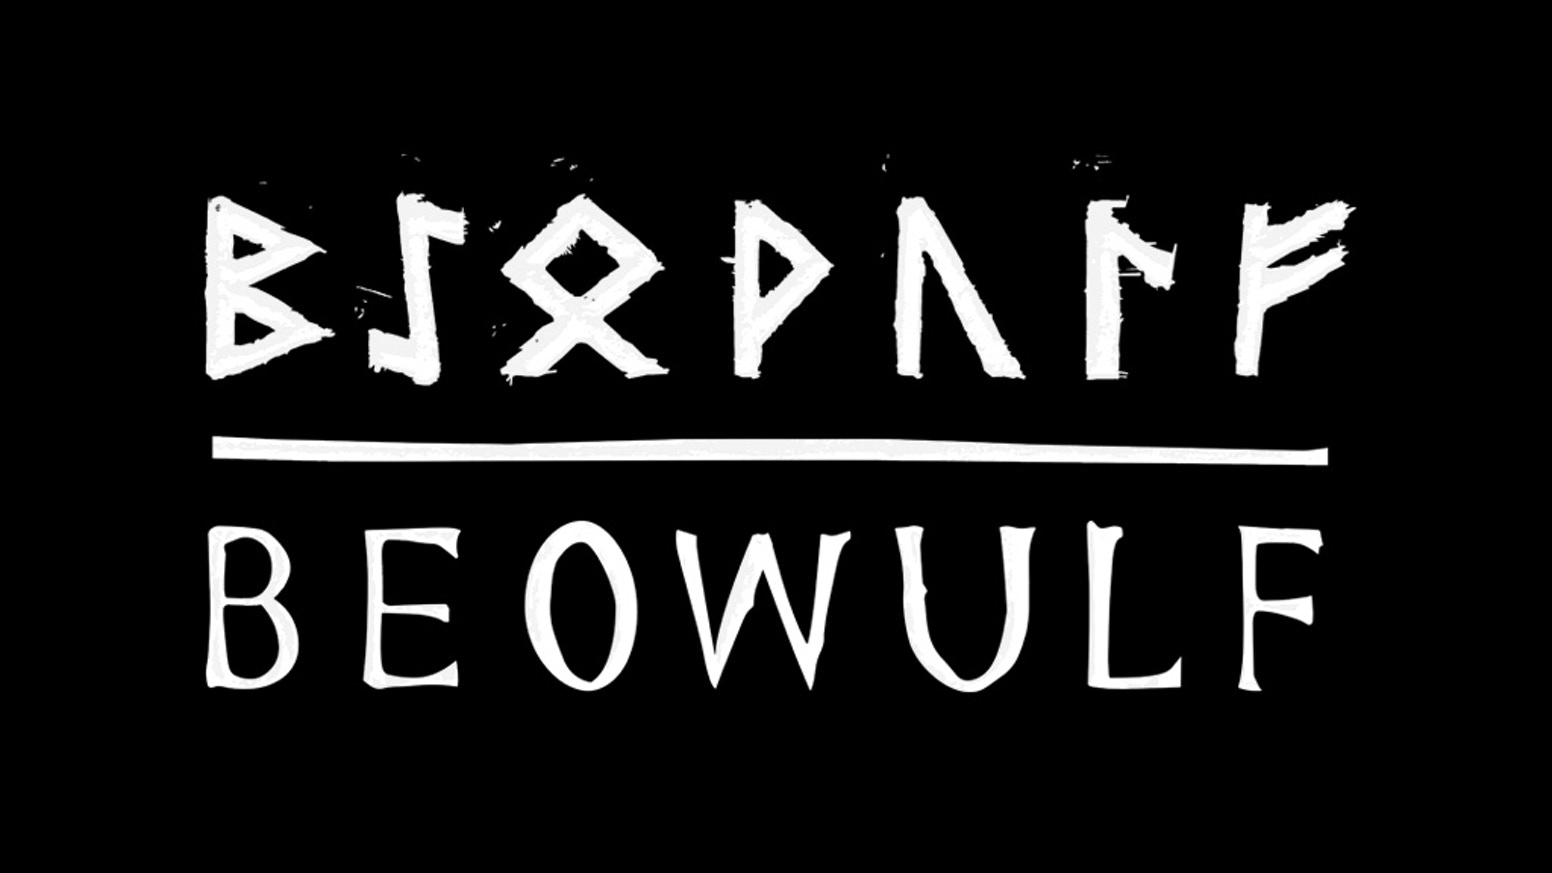 Beowulf A Board Game By King Post Kickstarter